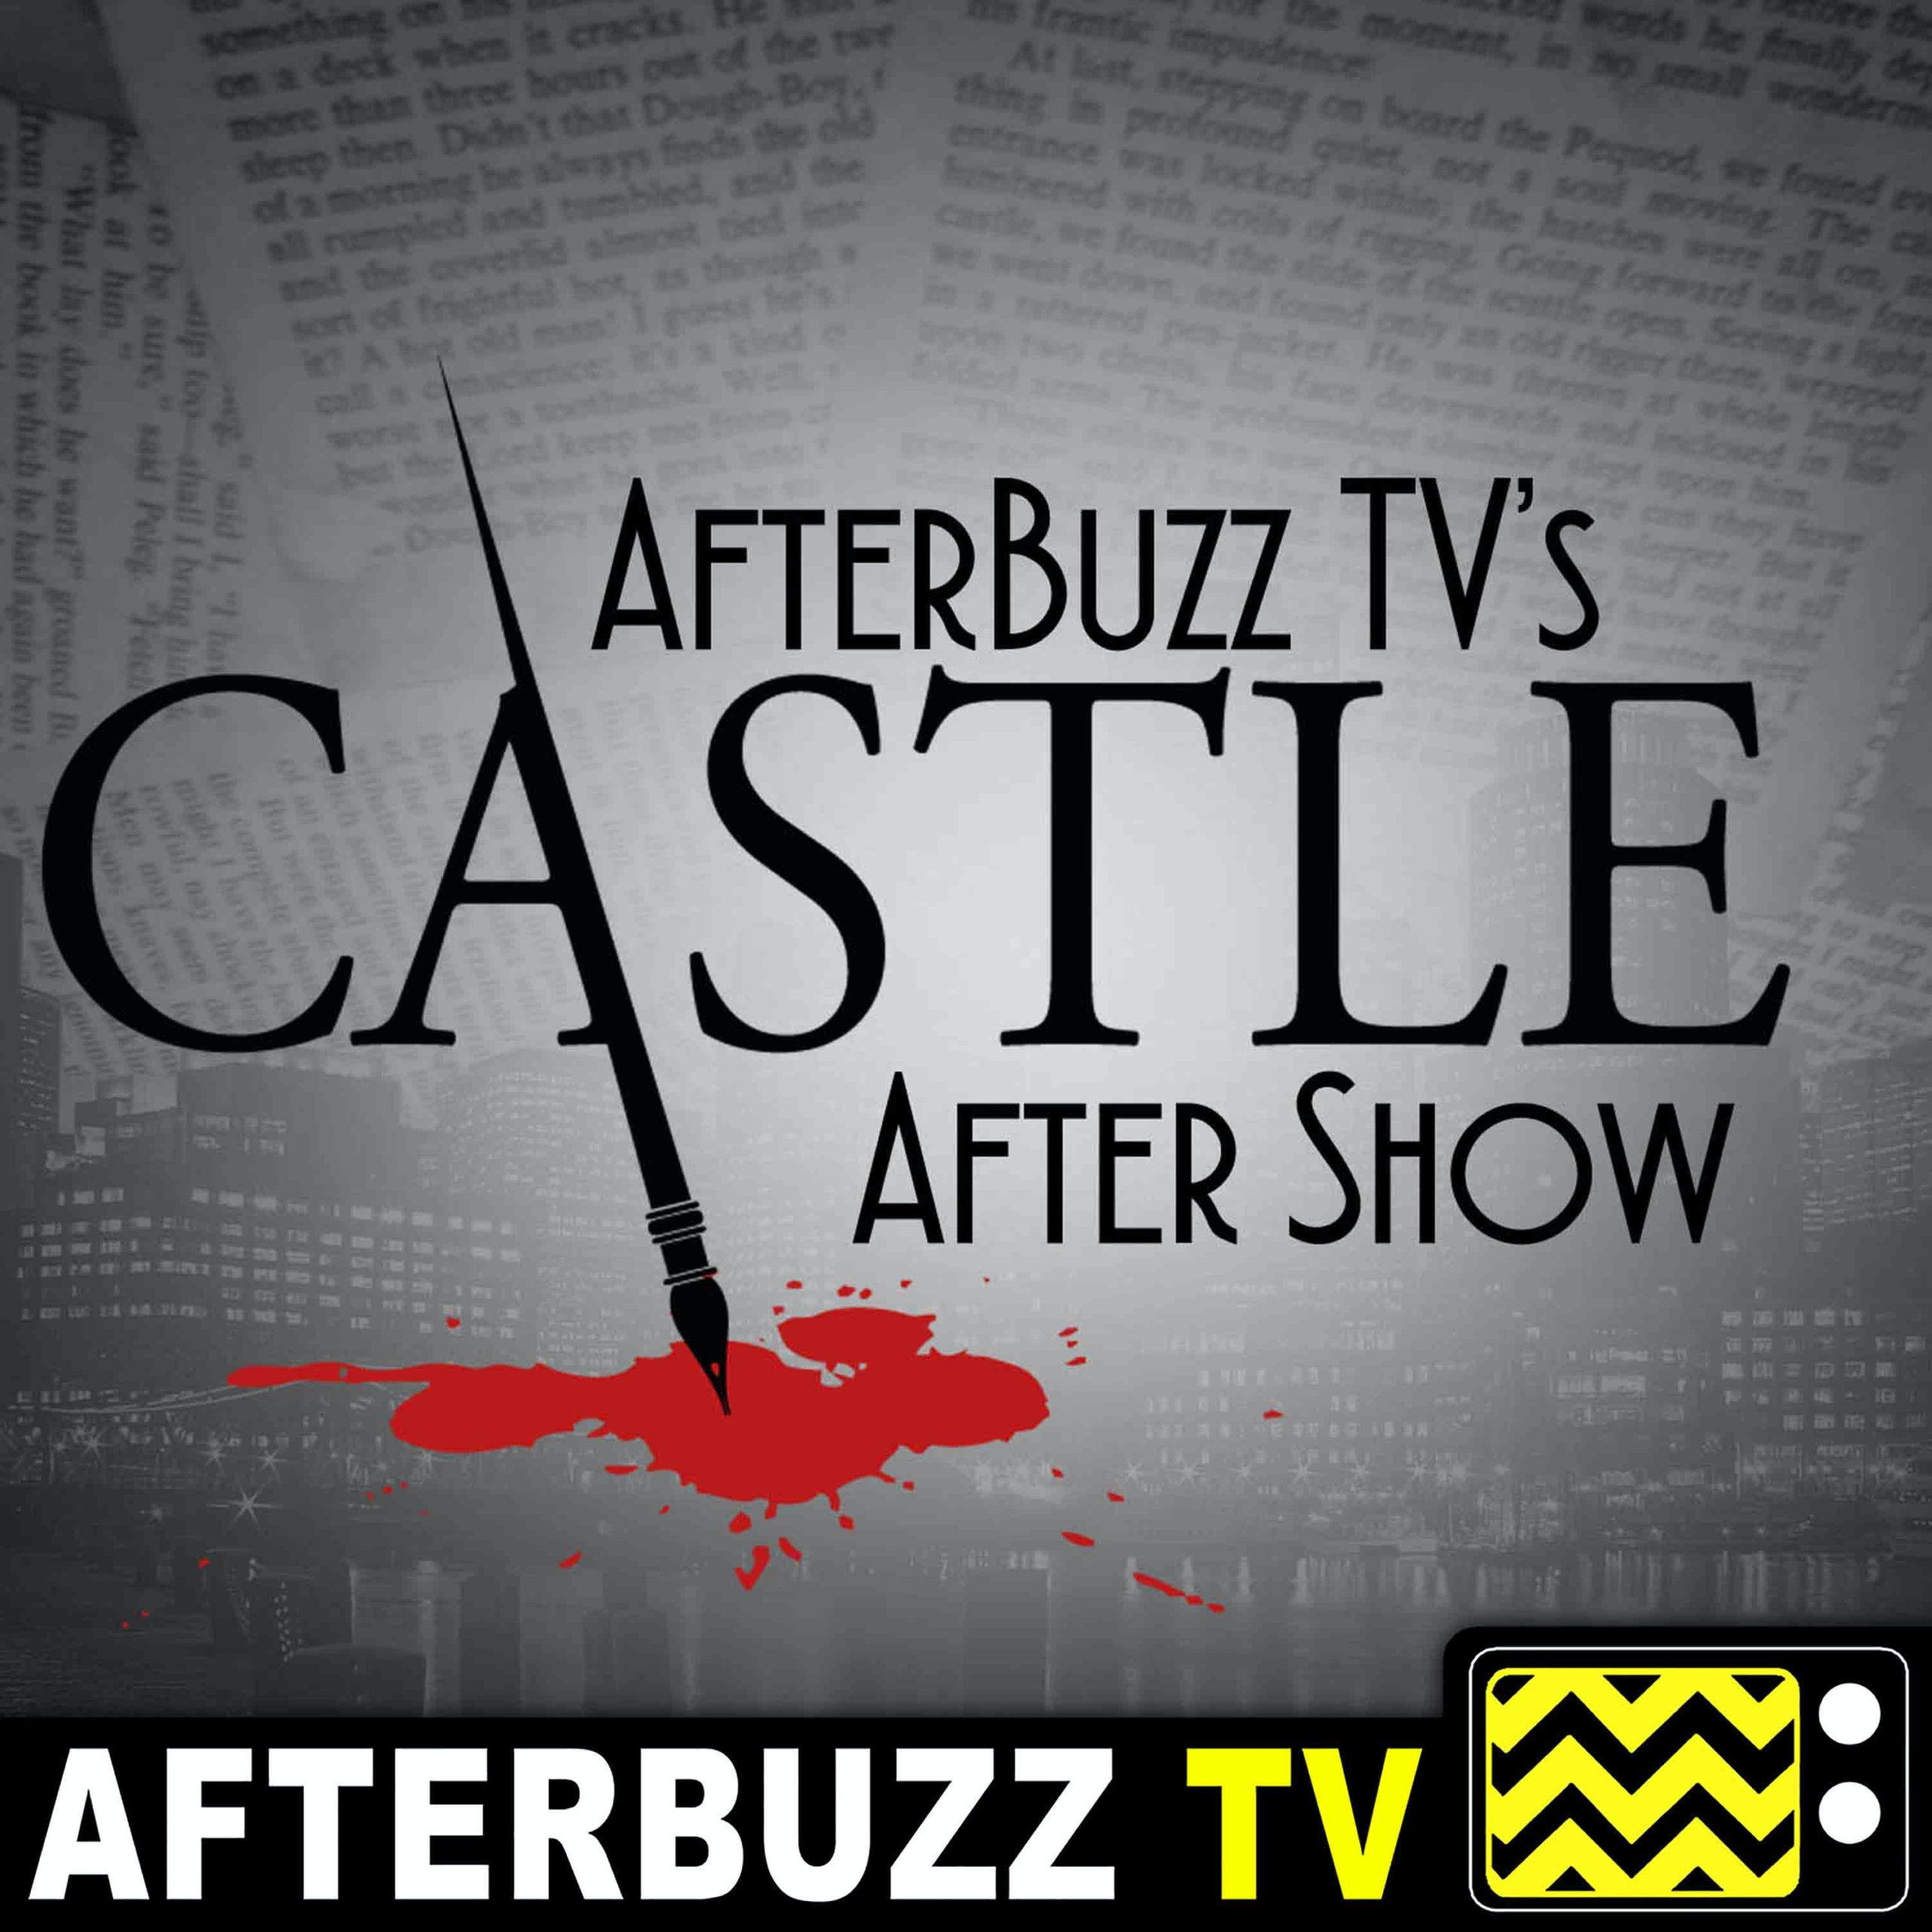 Castle Reviews and After Show - AfterBuzz TV